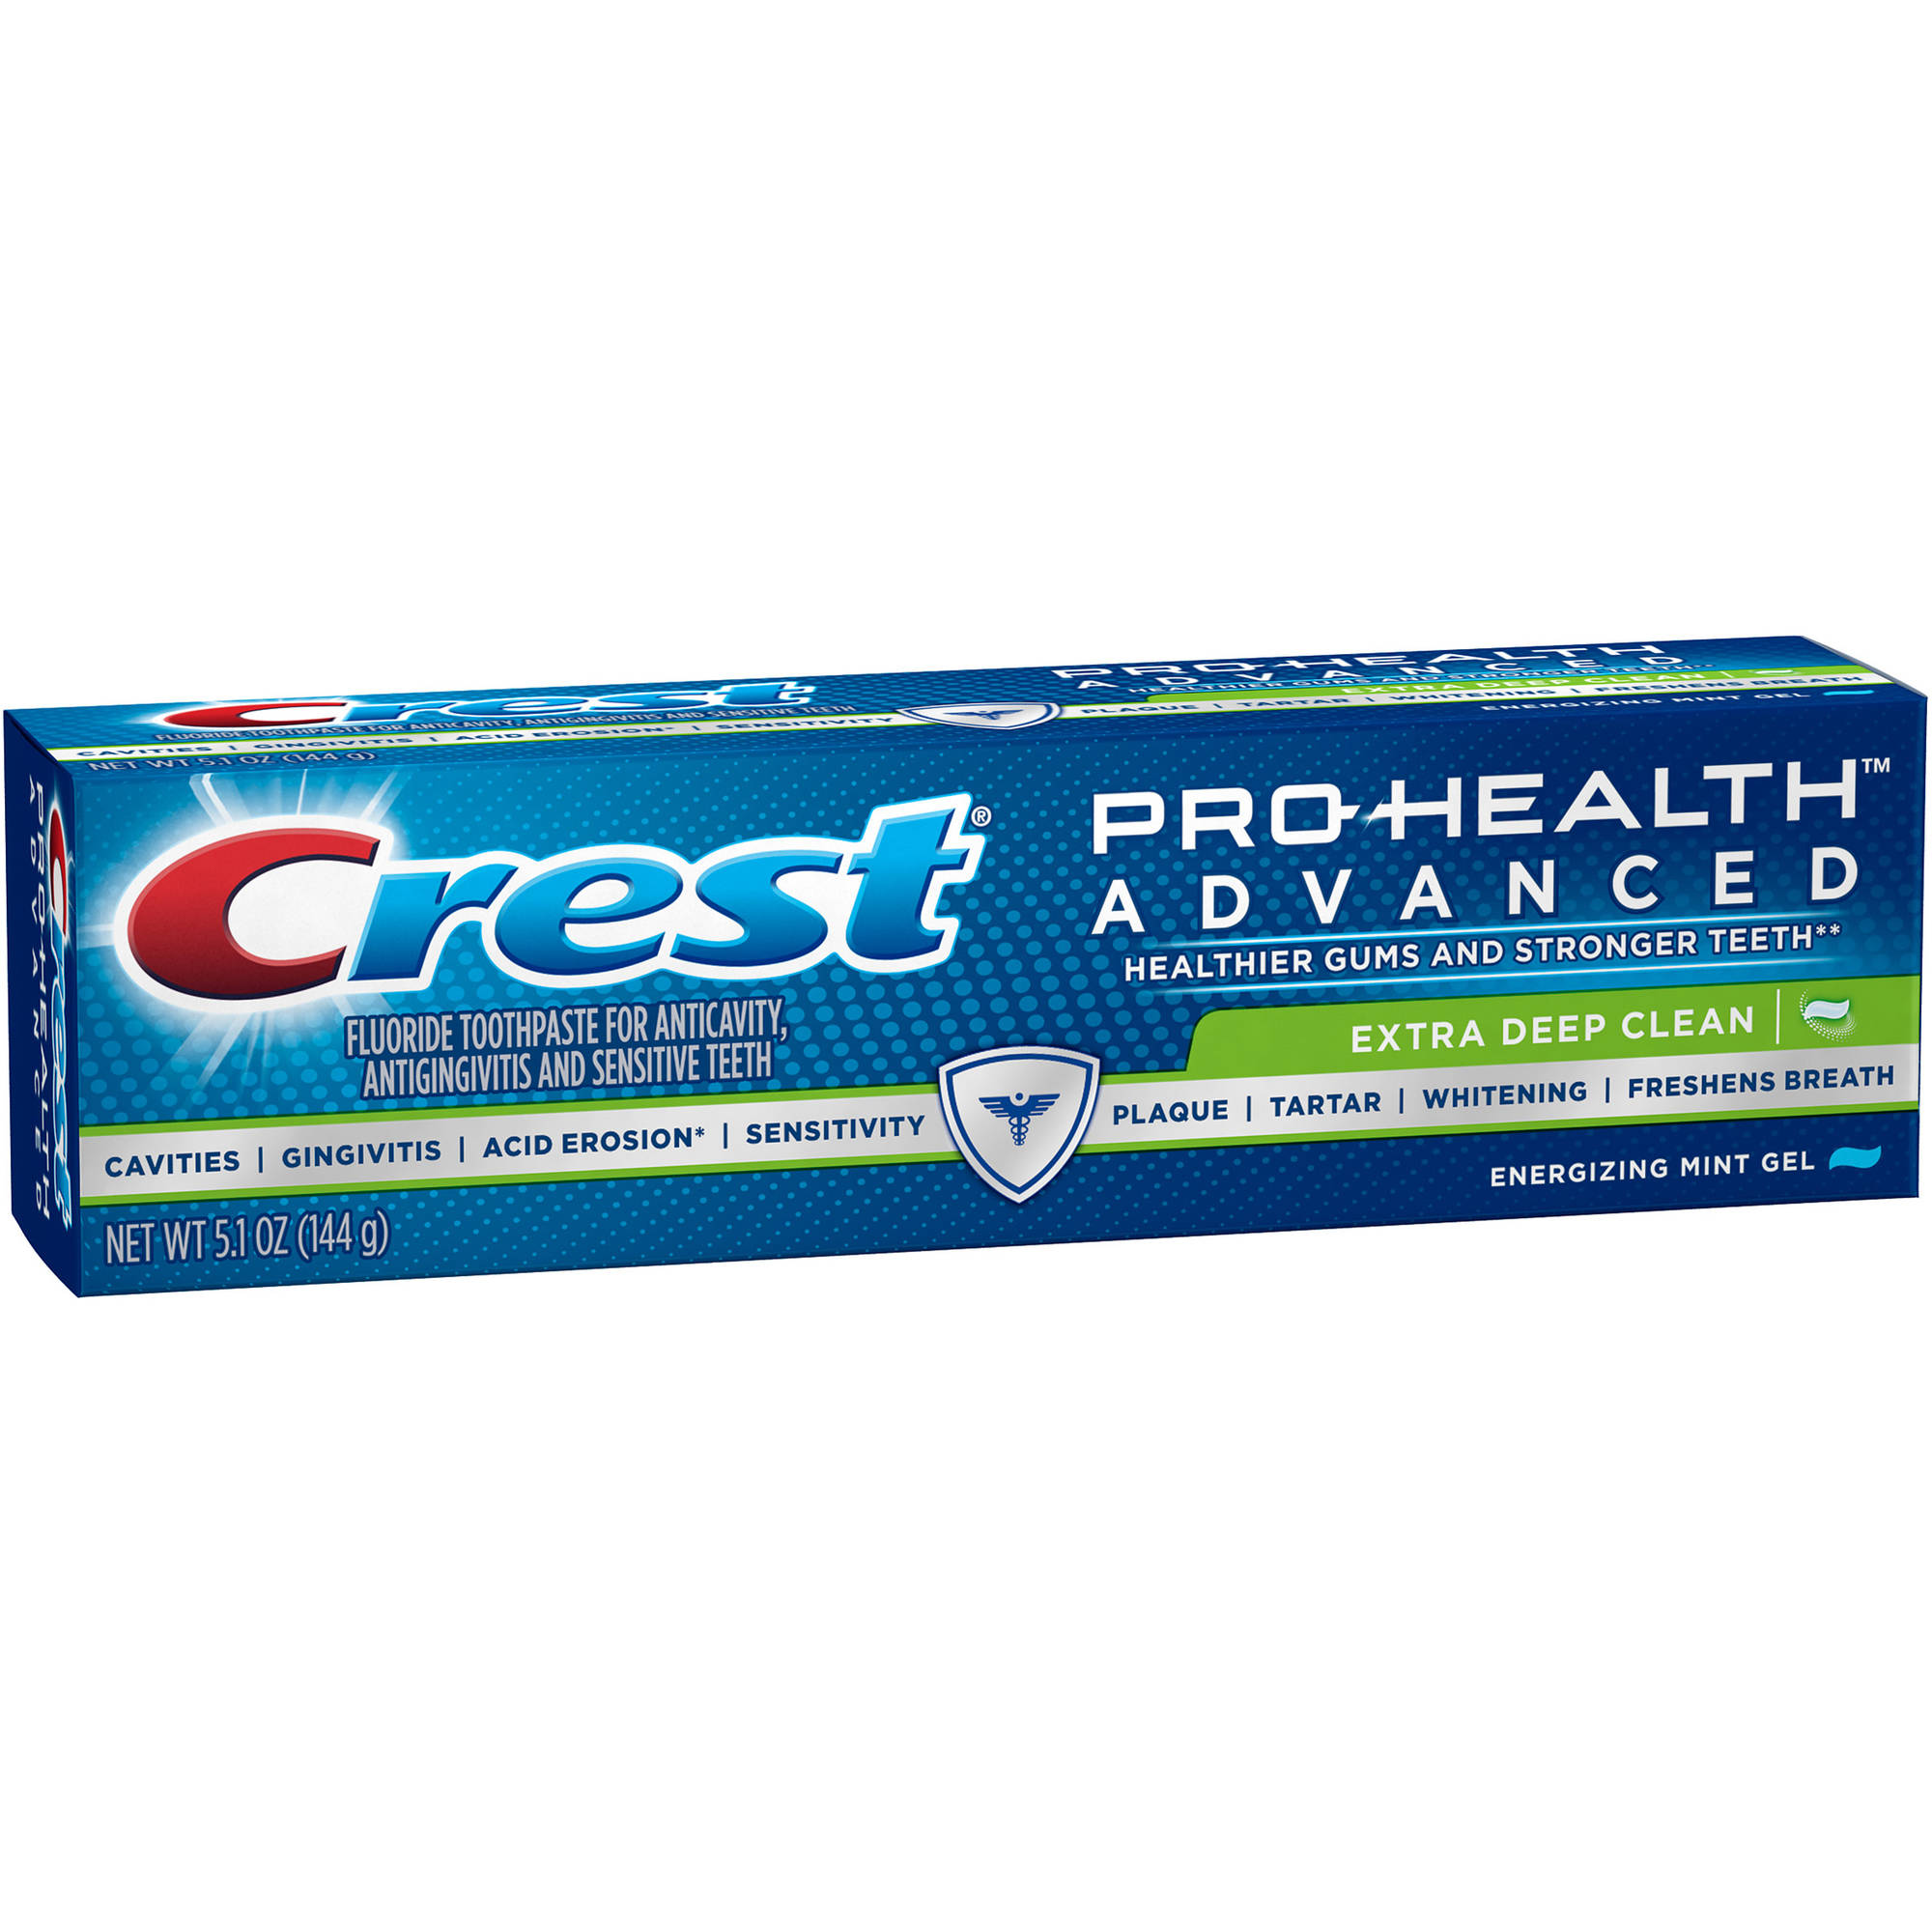 Crest Pro-Health Advanced Extra Deep Clean Energizing Mint Gel Extra Deep Clean Toothpaste, 5.1 oz